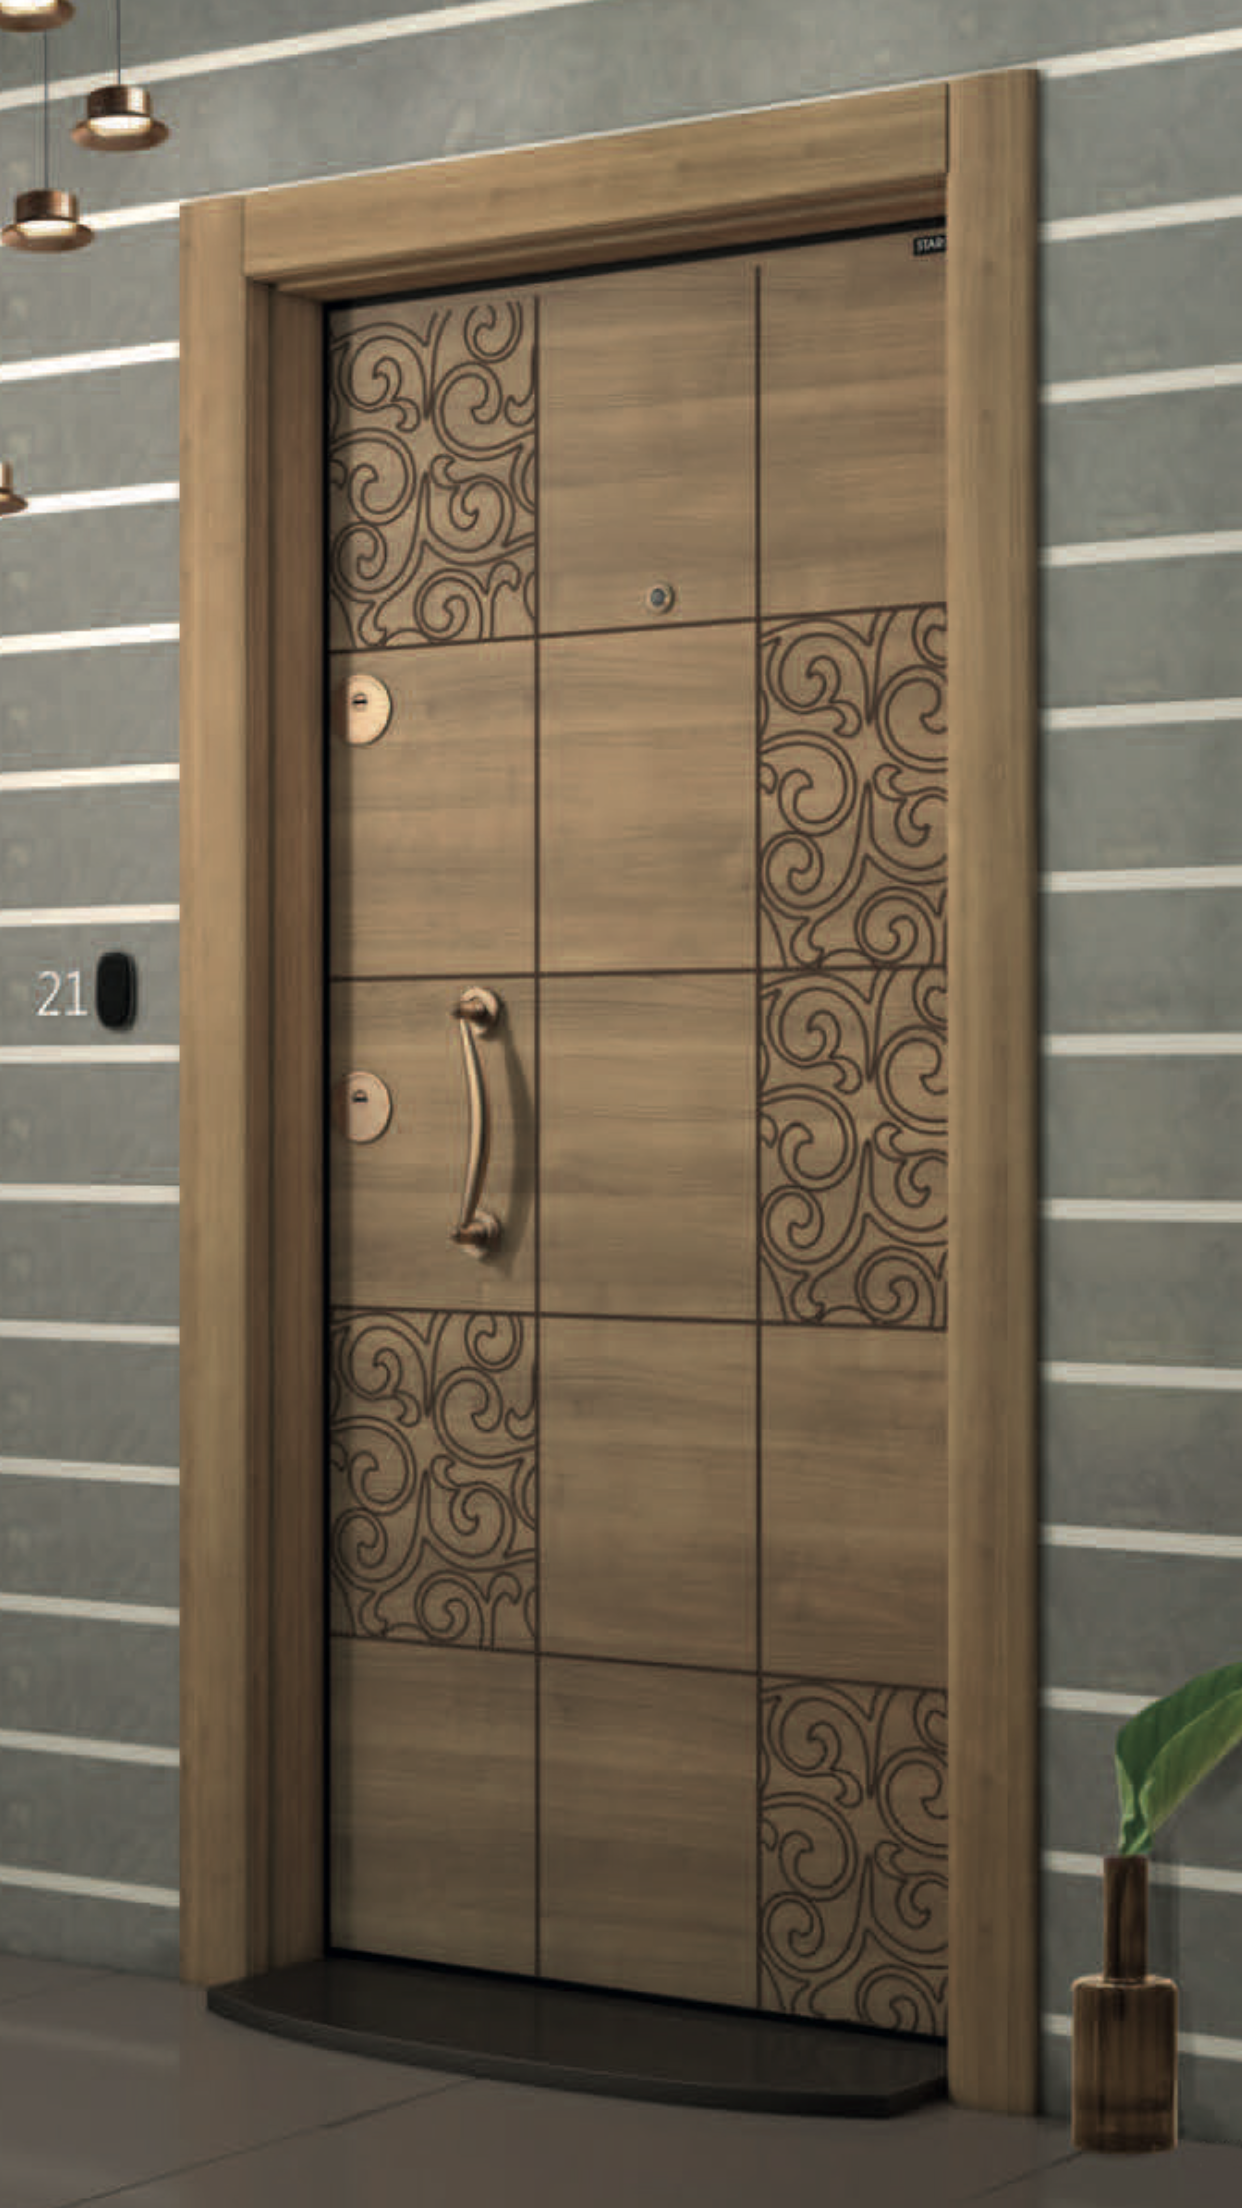 Main Door Design Door Design Modern Wood: Door Design Interior, Flush Door Design